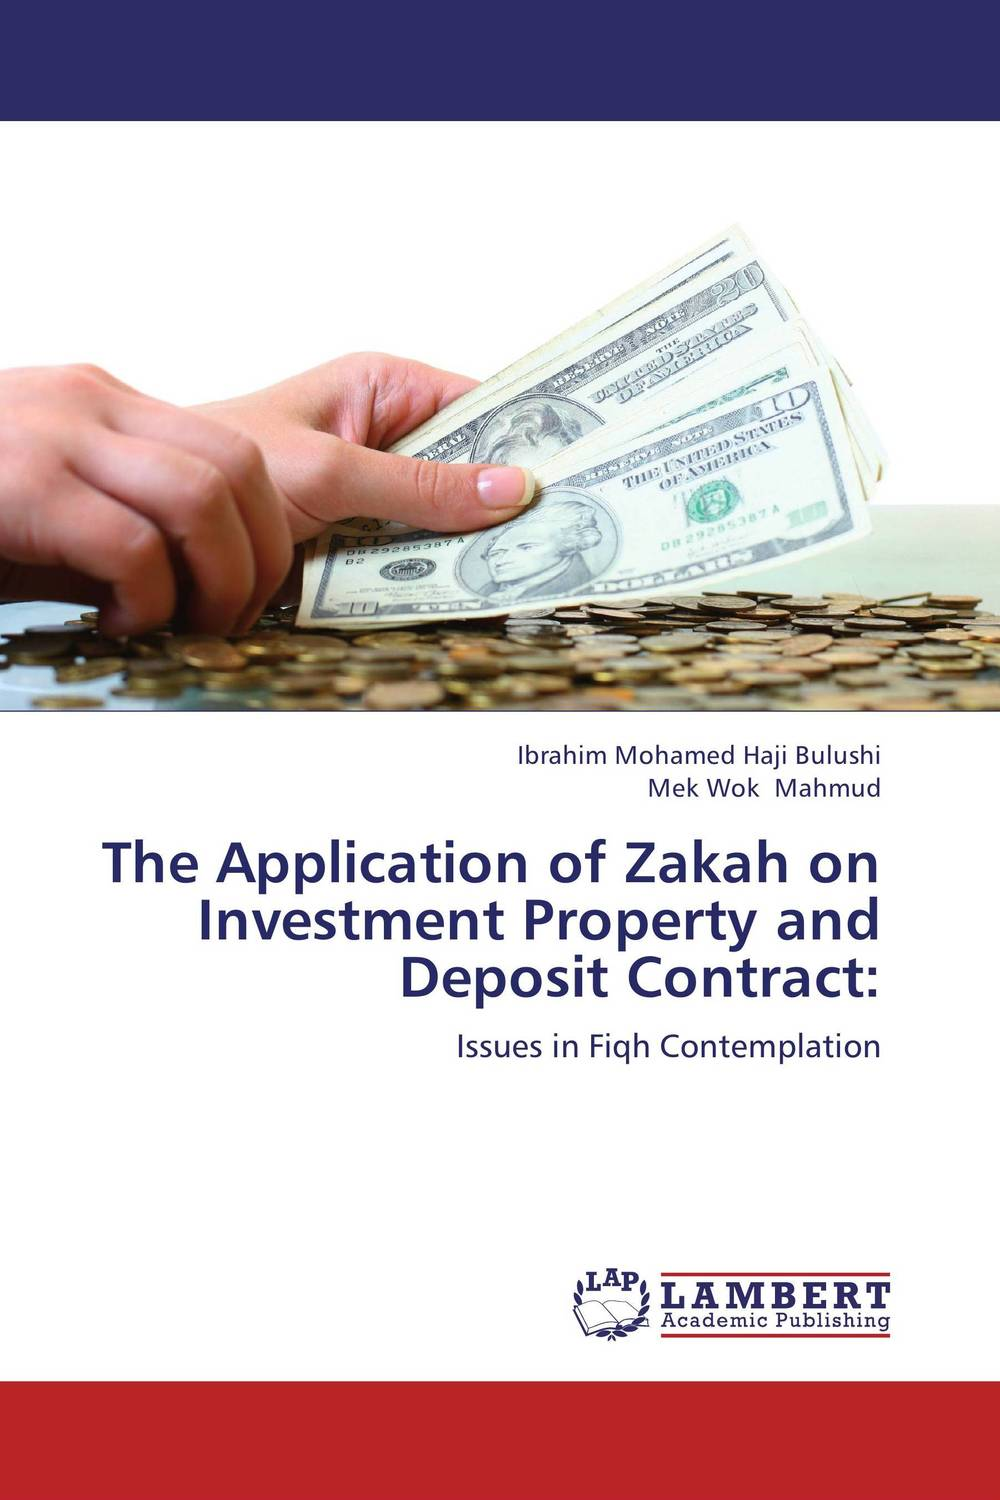 The Application of Zakah on Investment Property and Deposit Contract: an application of call in english subject